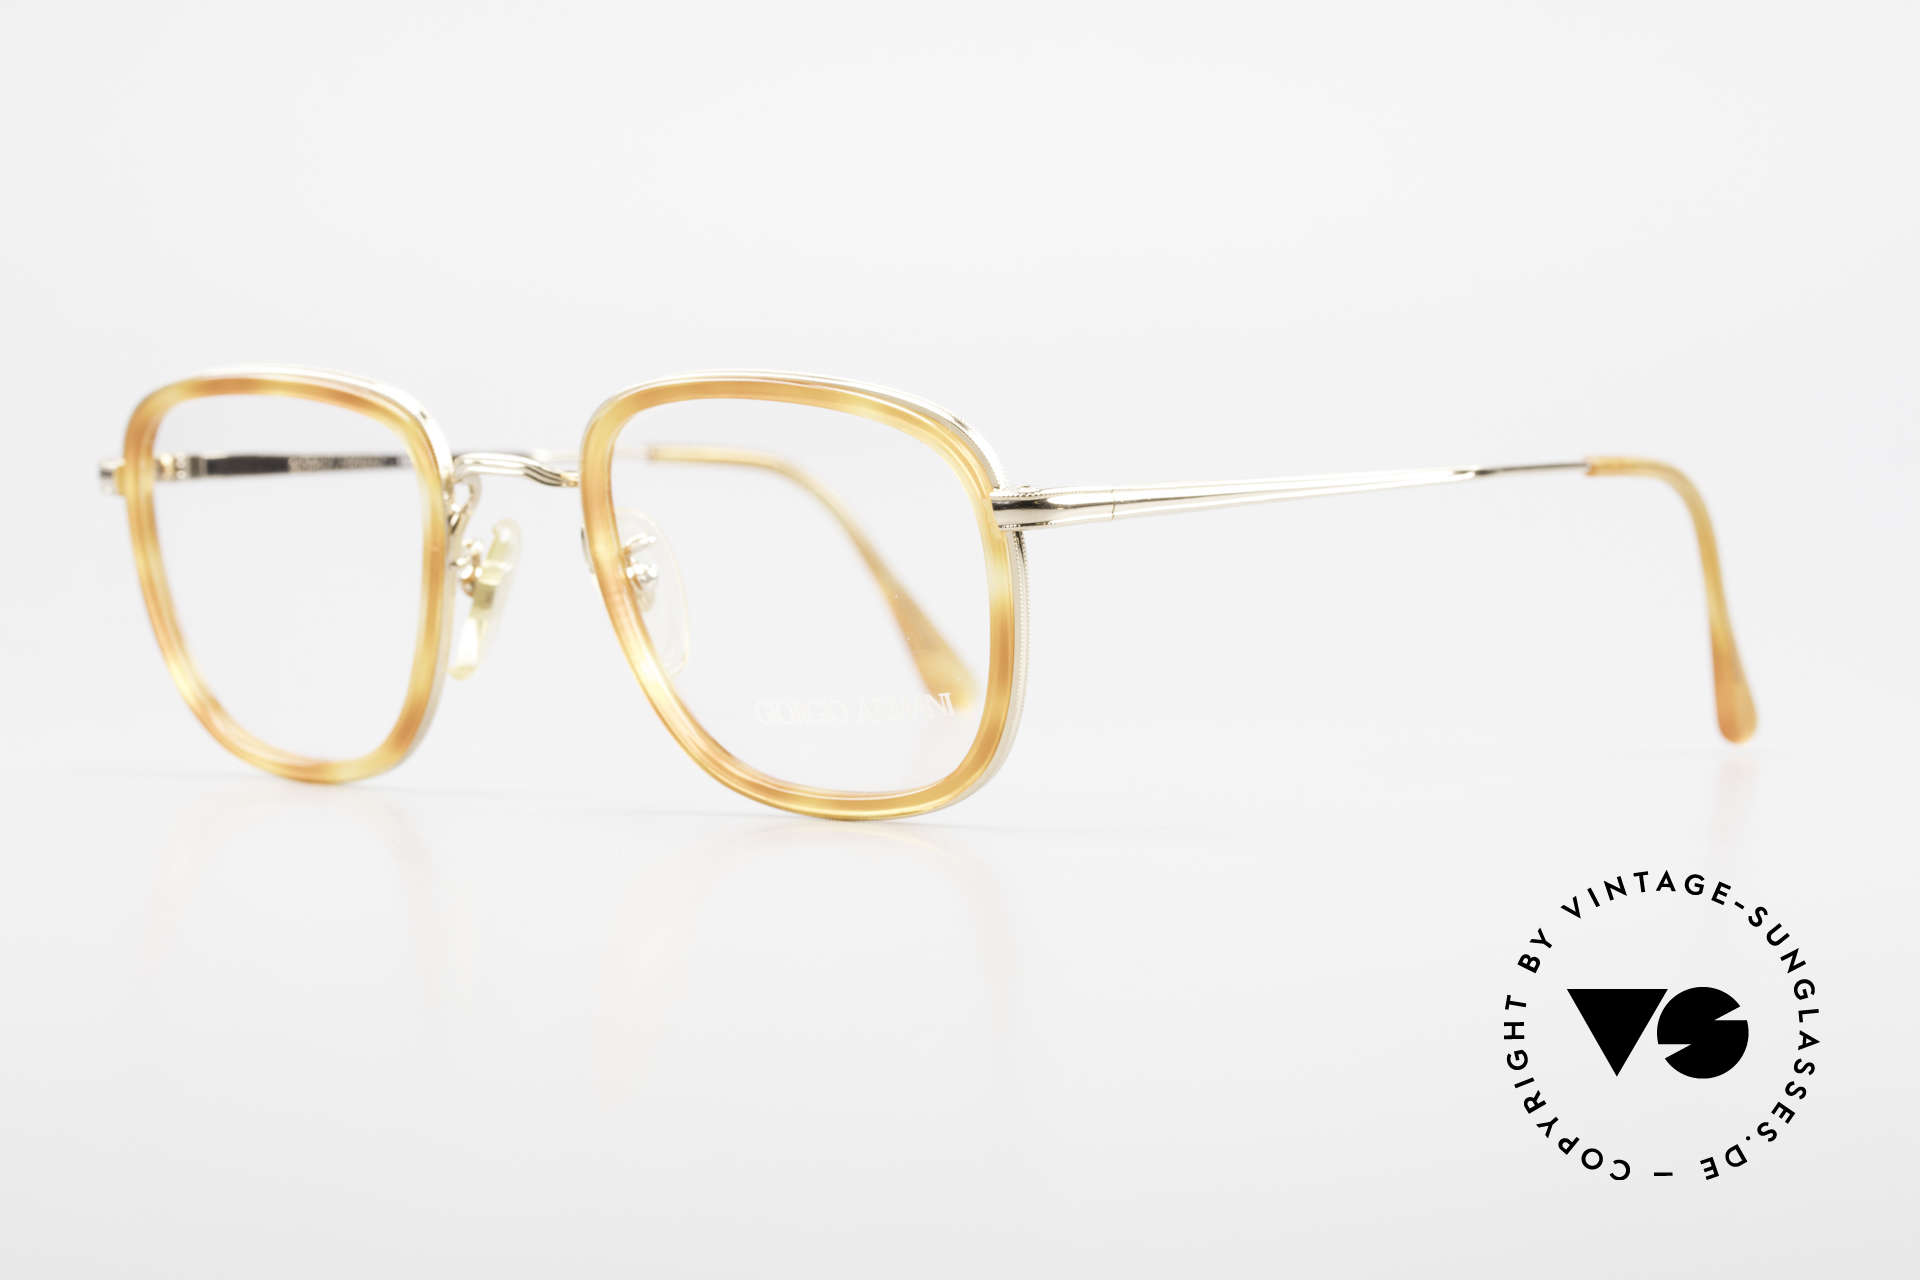 Giorgio Armani 102 Square Vintage Eyeglasses 90's, GOLD-PLATED frame with light tortoise plastic rings, Made for Men and Women